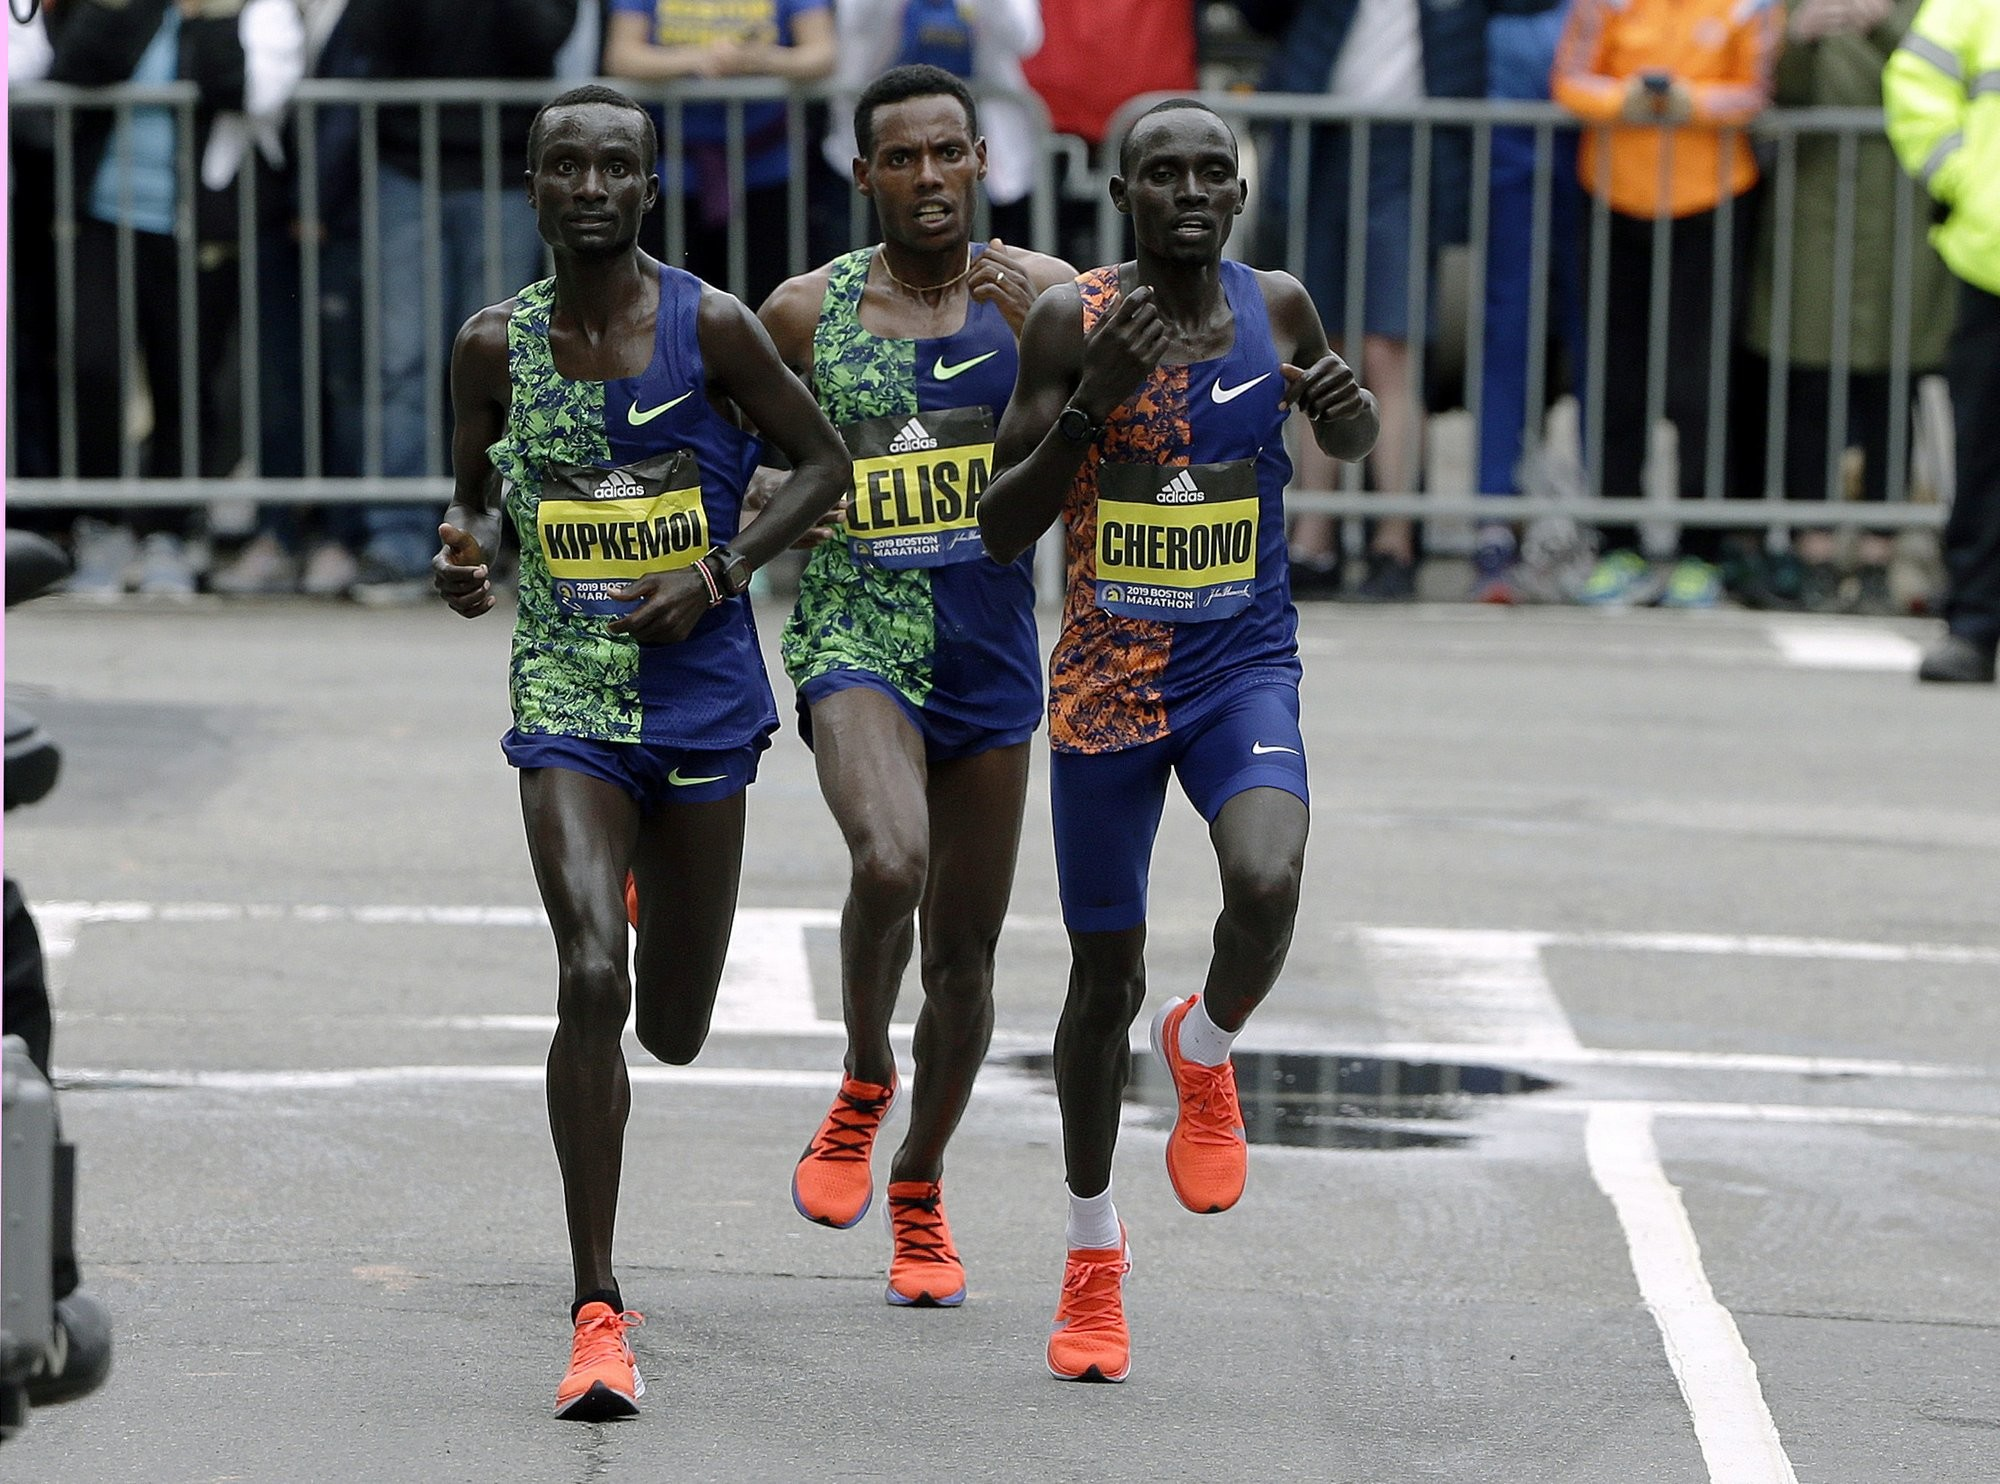 Reigning Boston Marathon champion Lawrence Cherono can´t wait to defend Boston crown next year